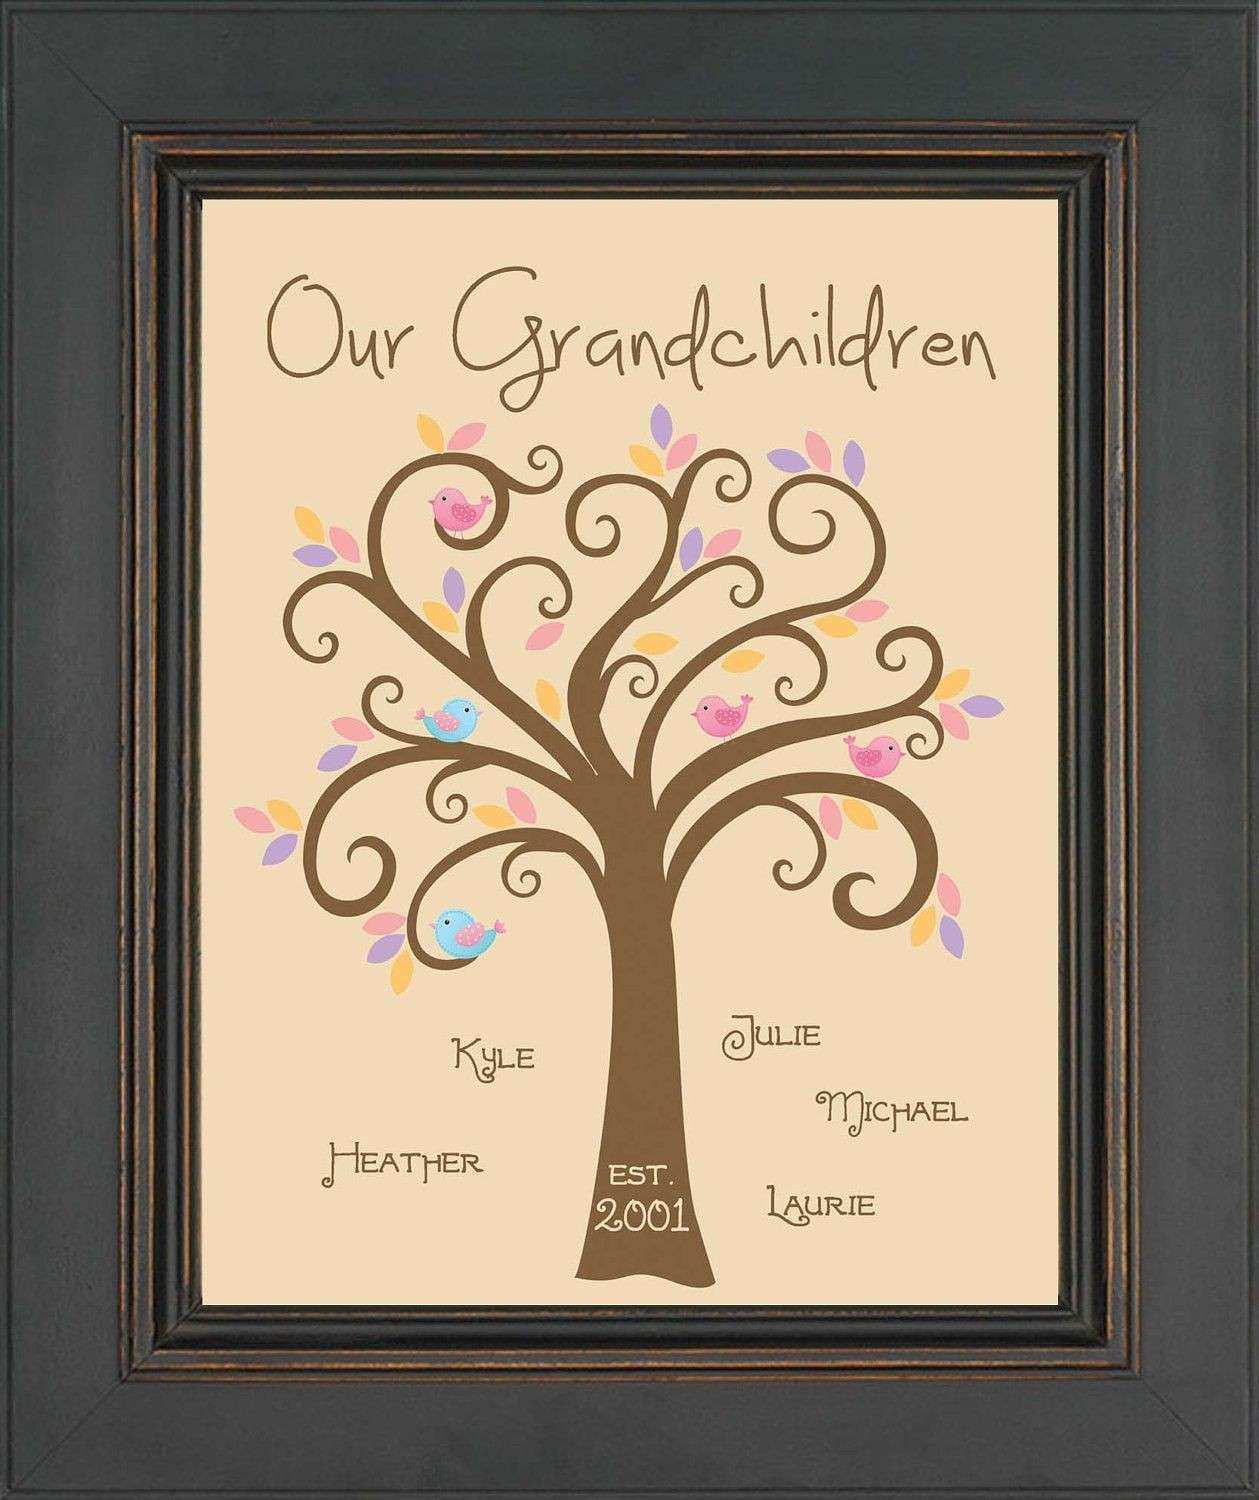 Personalized Wall Art With Names Fresh Grandparents Gift Family Tree Grandkids Birds And